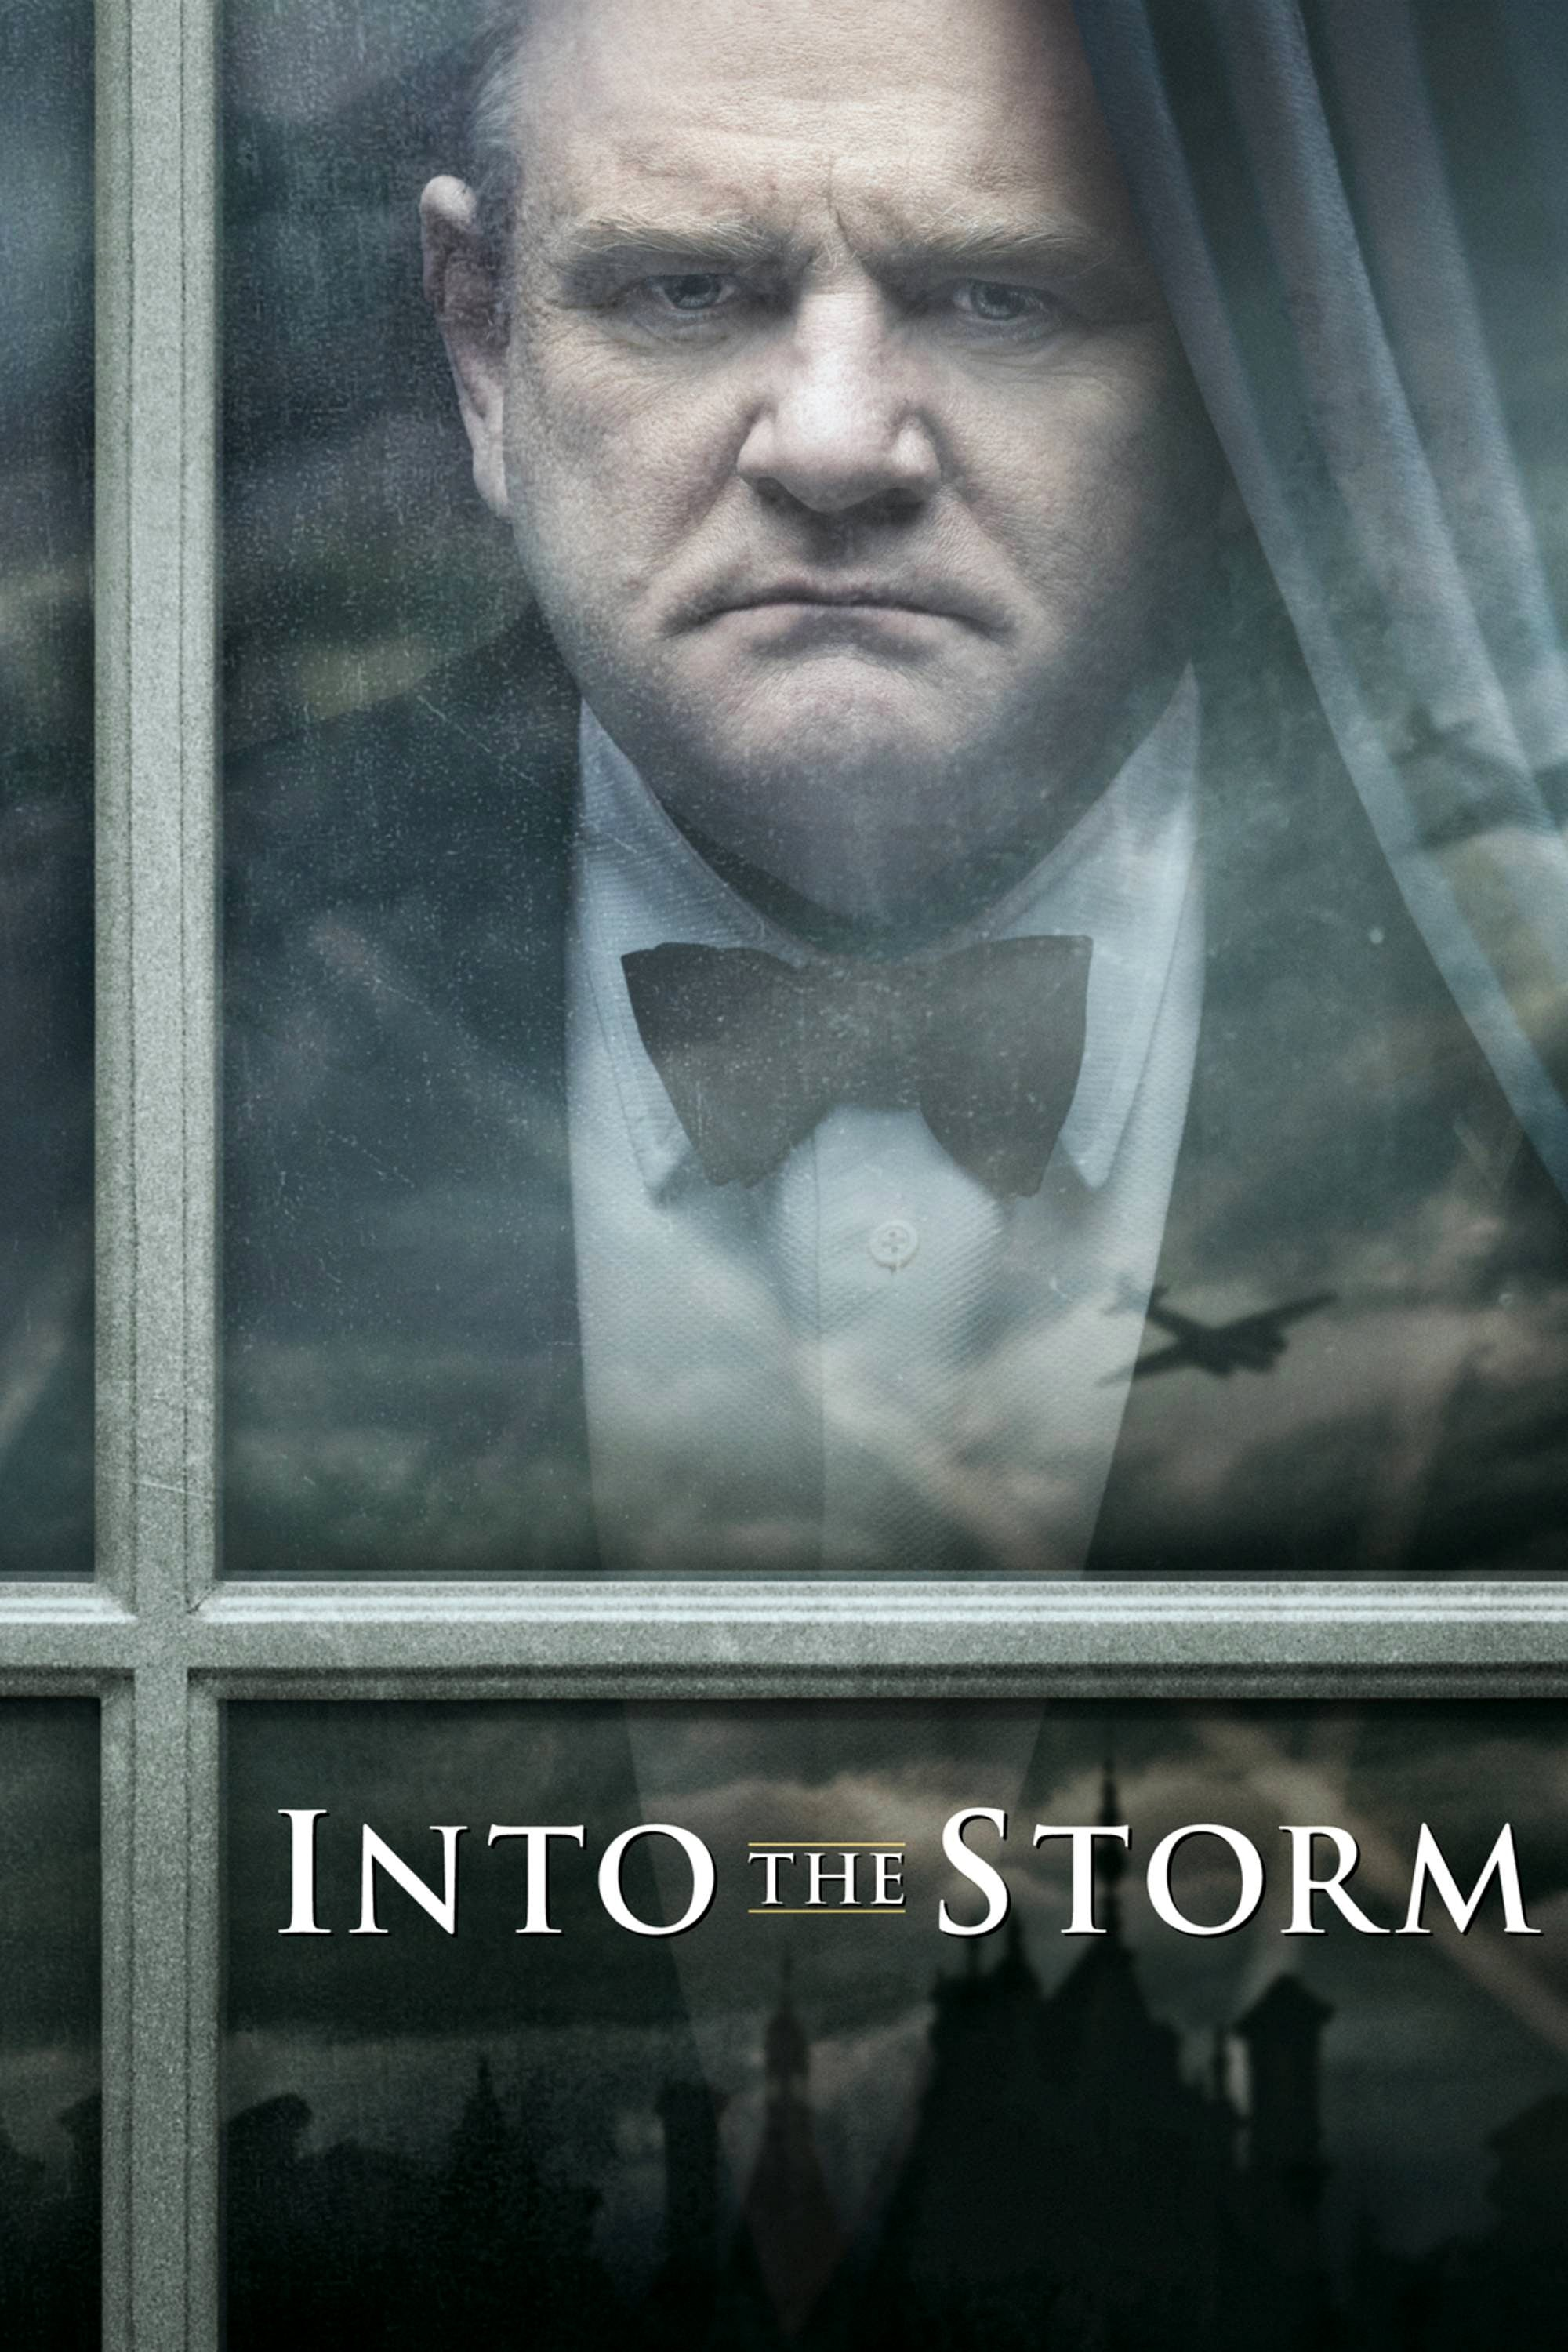 Into the Storm (2010)